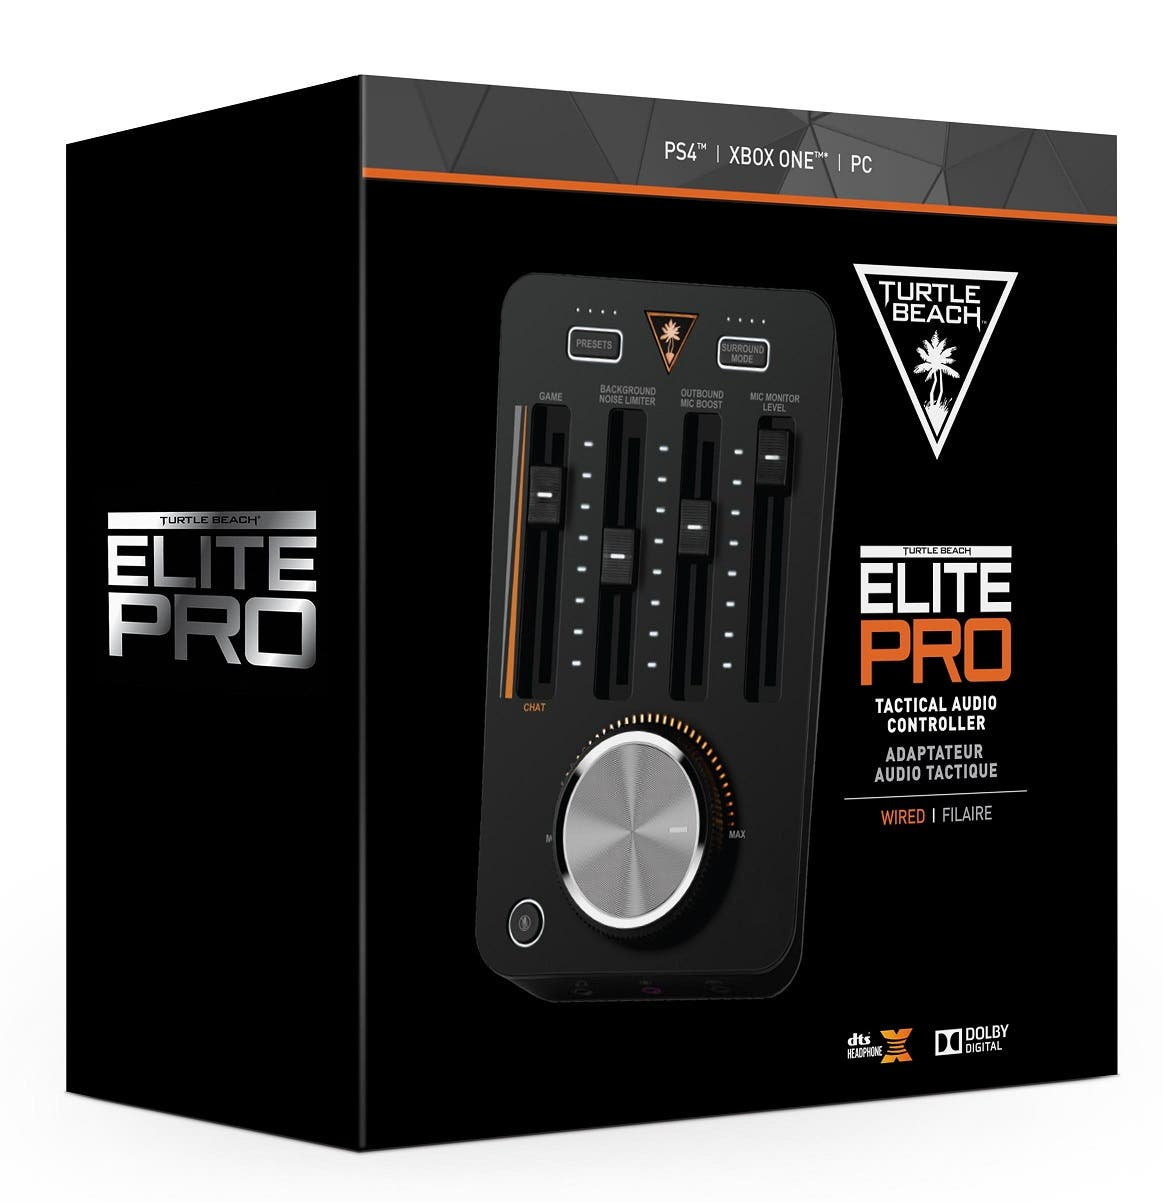 eliteprotac-review1